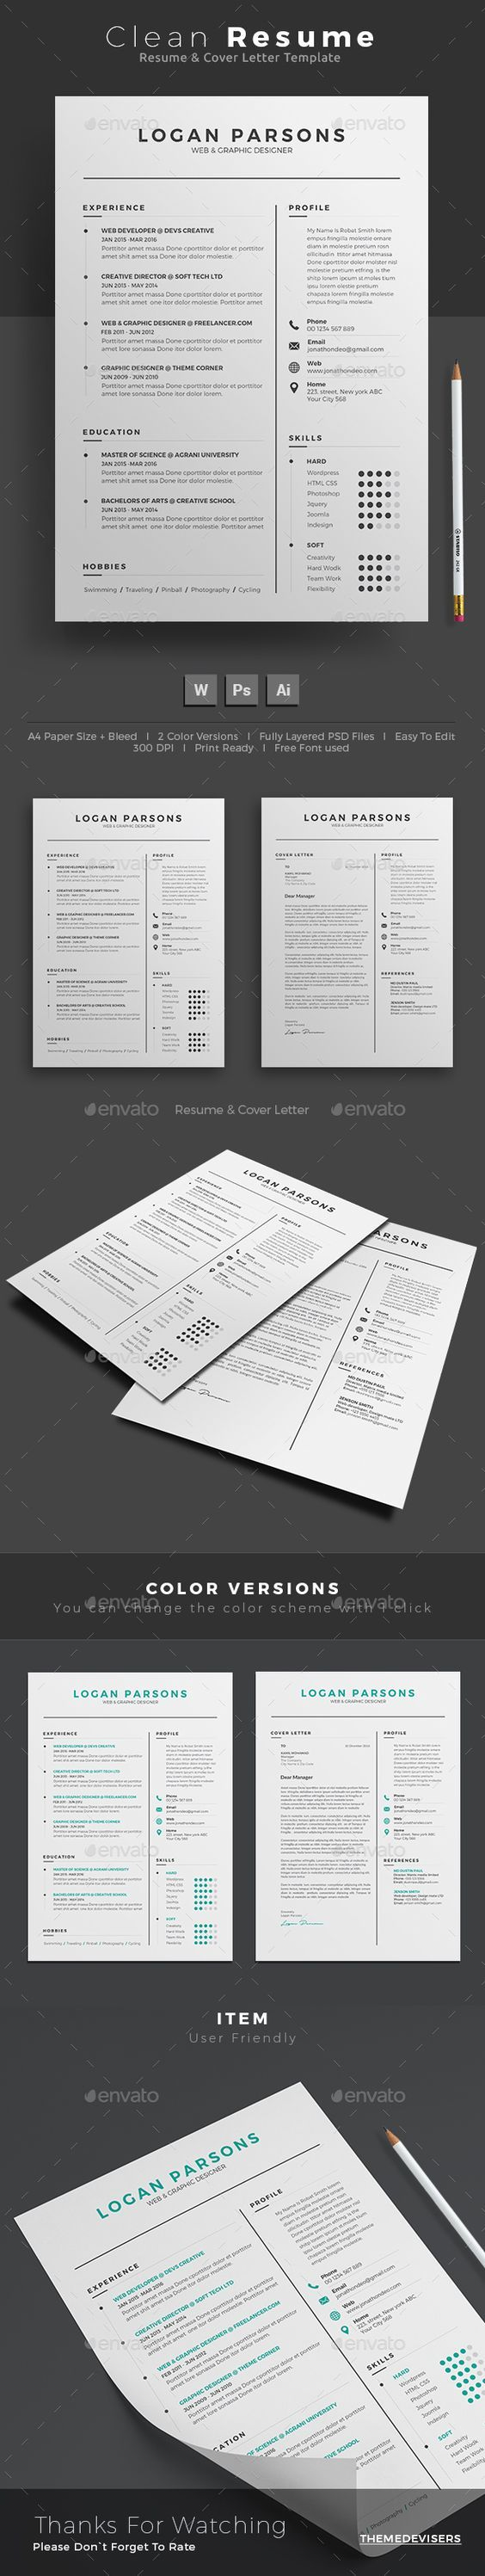 Professional Resume Templates for MS Word by